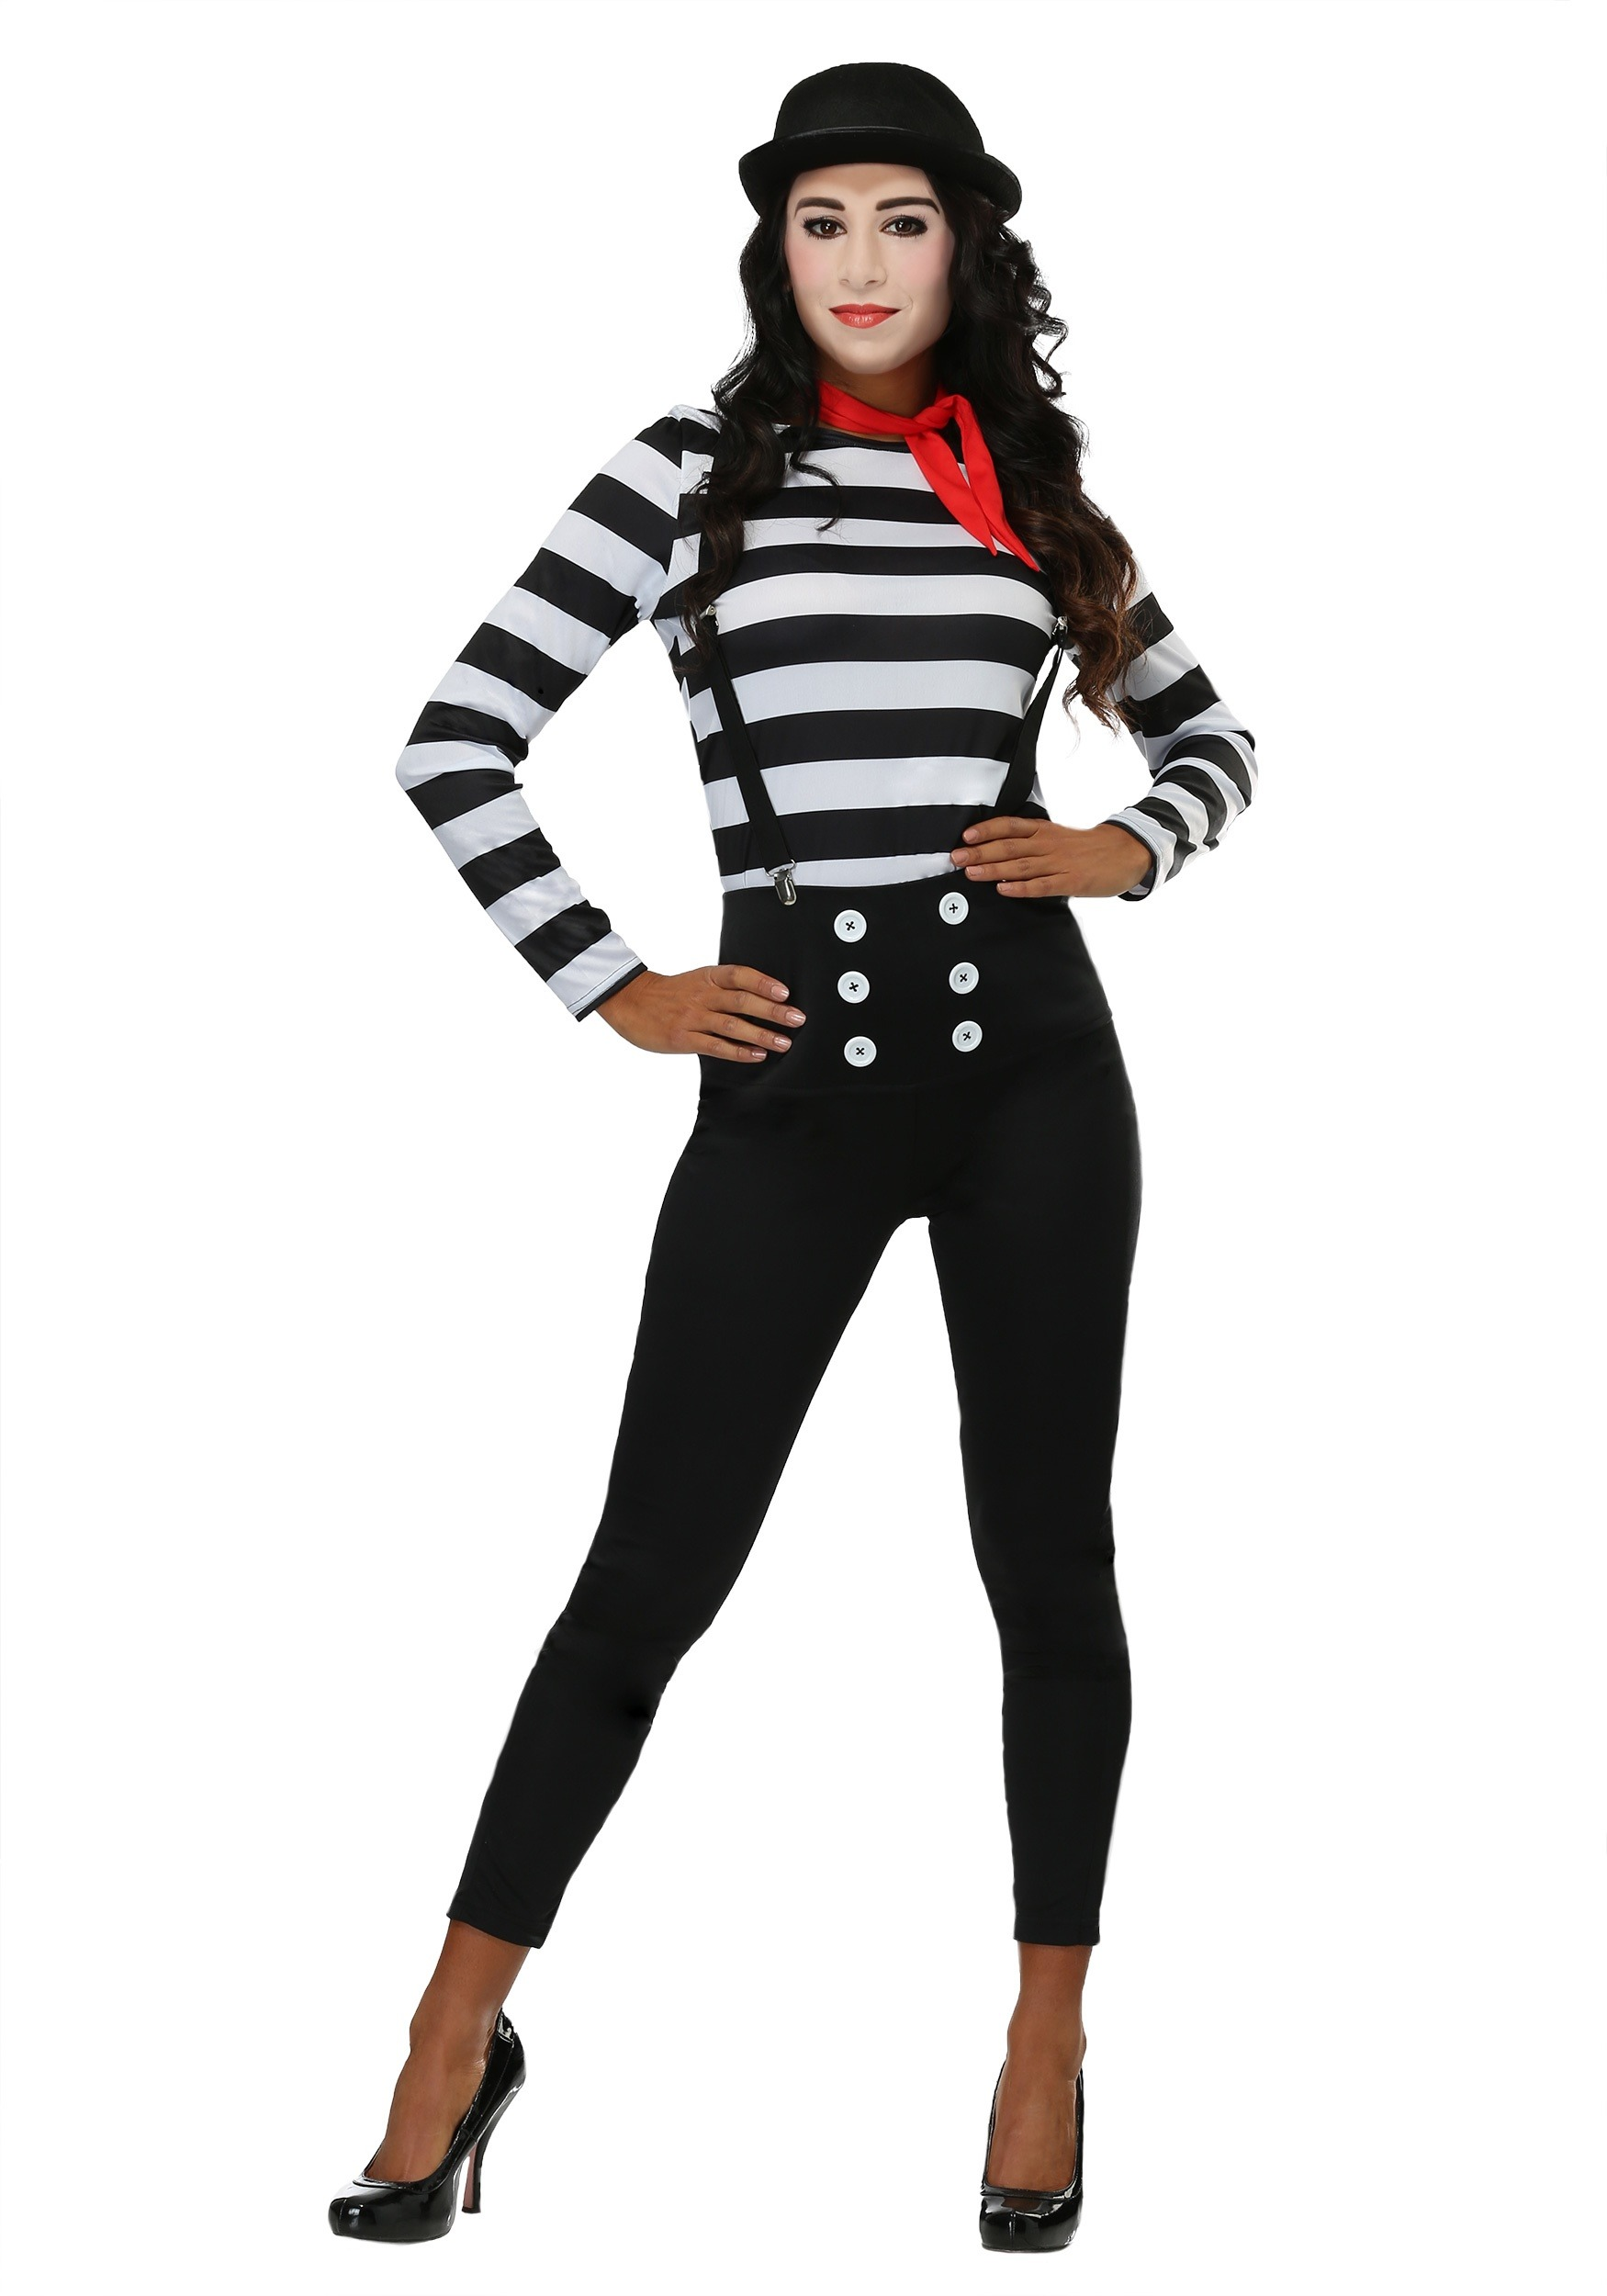 mime costume for women